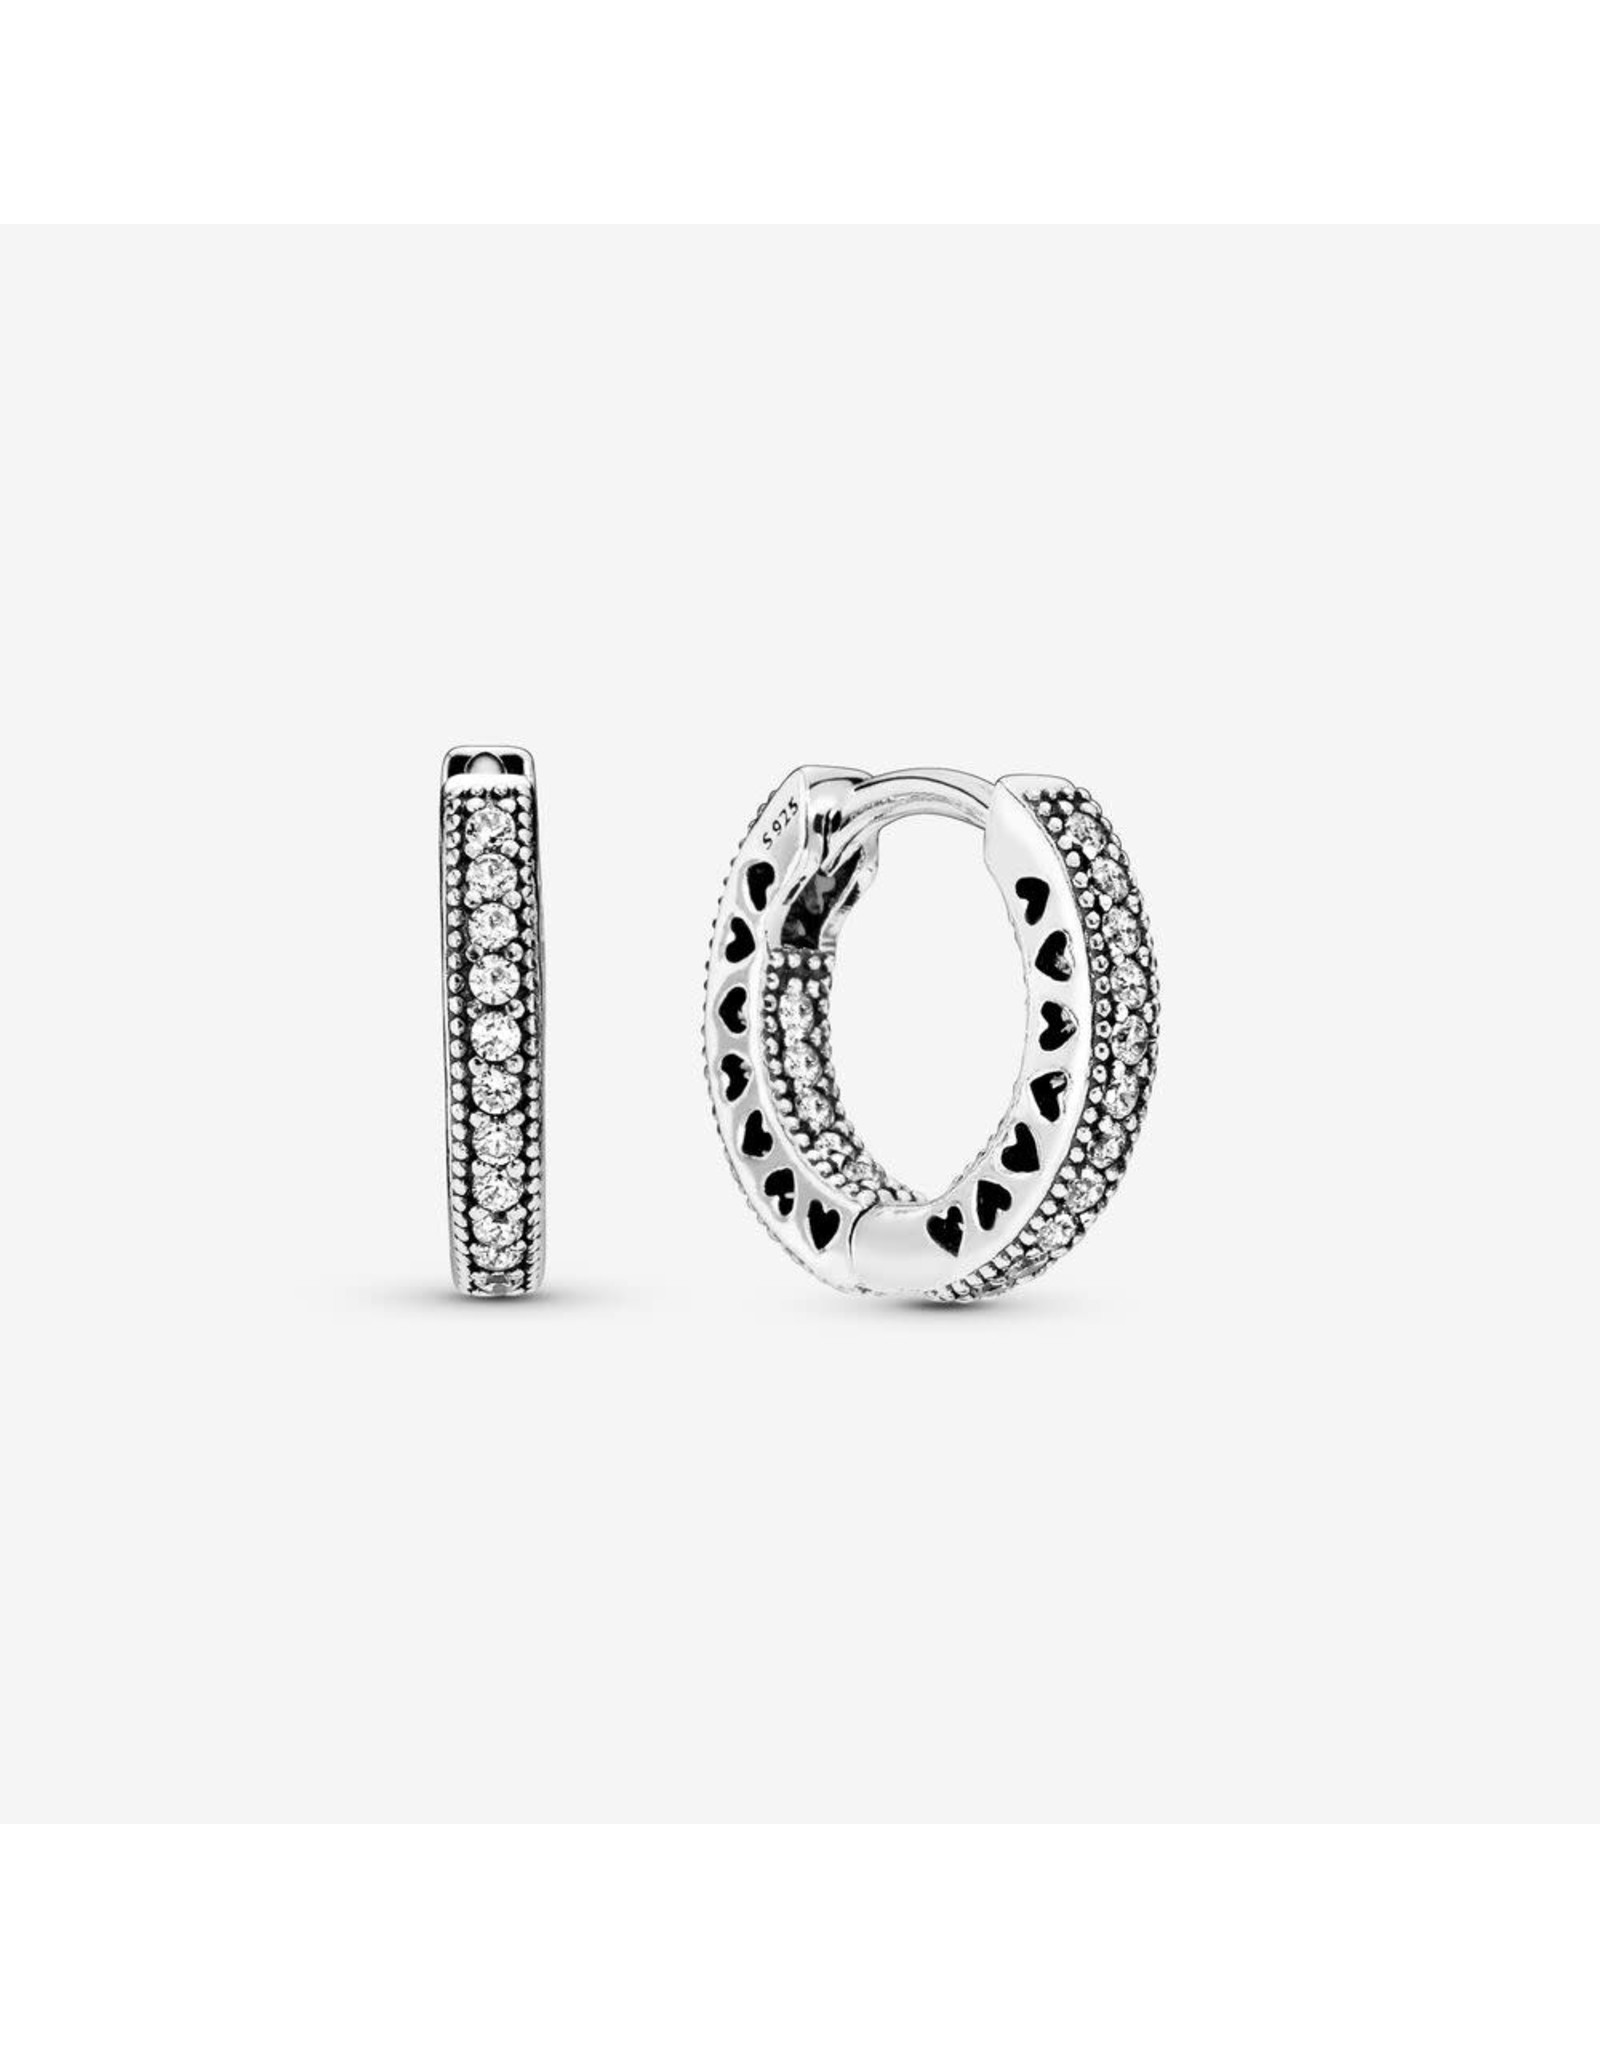 Pandora Pandora Hoop Earrings,296317CZ, In sterling Silver With Clear CZ And Cut-Out Heart Details